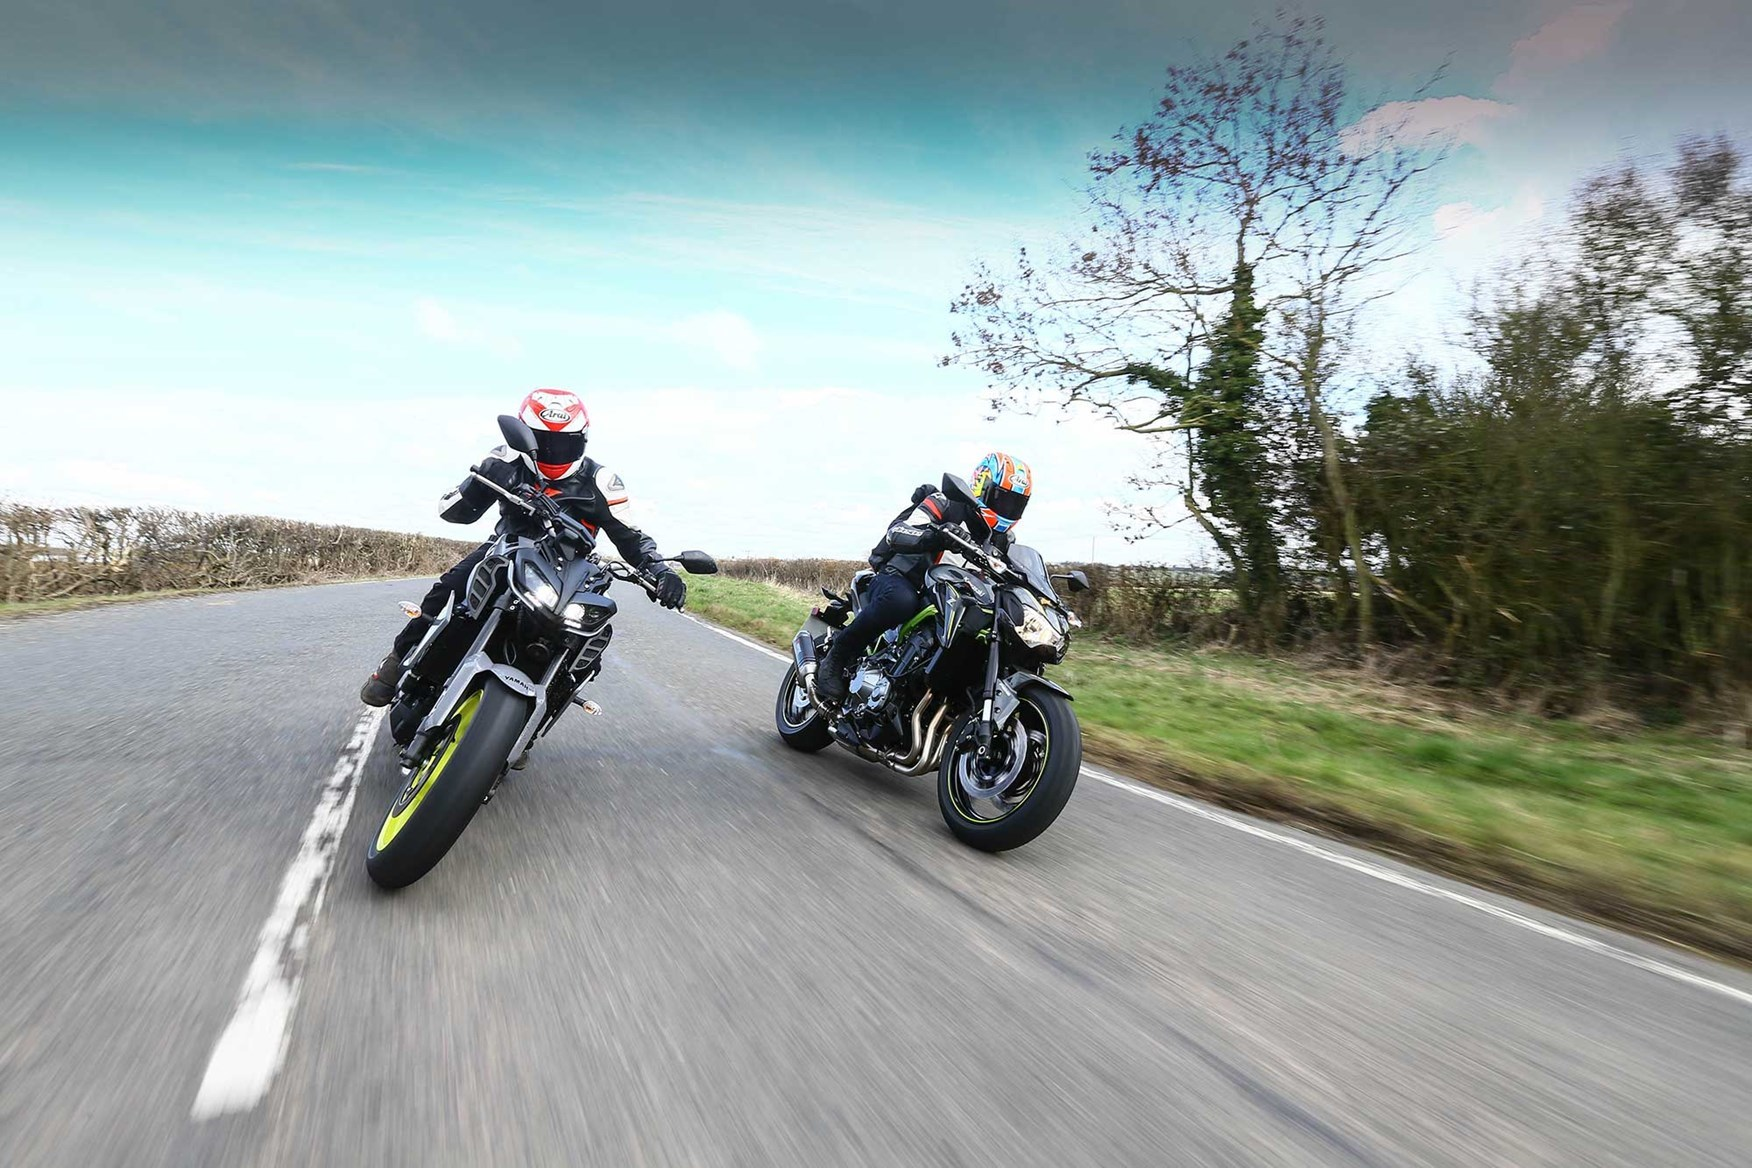 two-motorbikes-riding-on-road